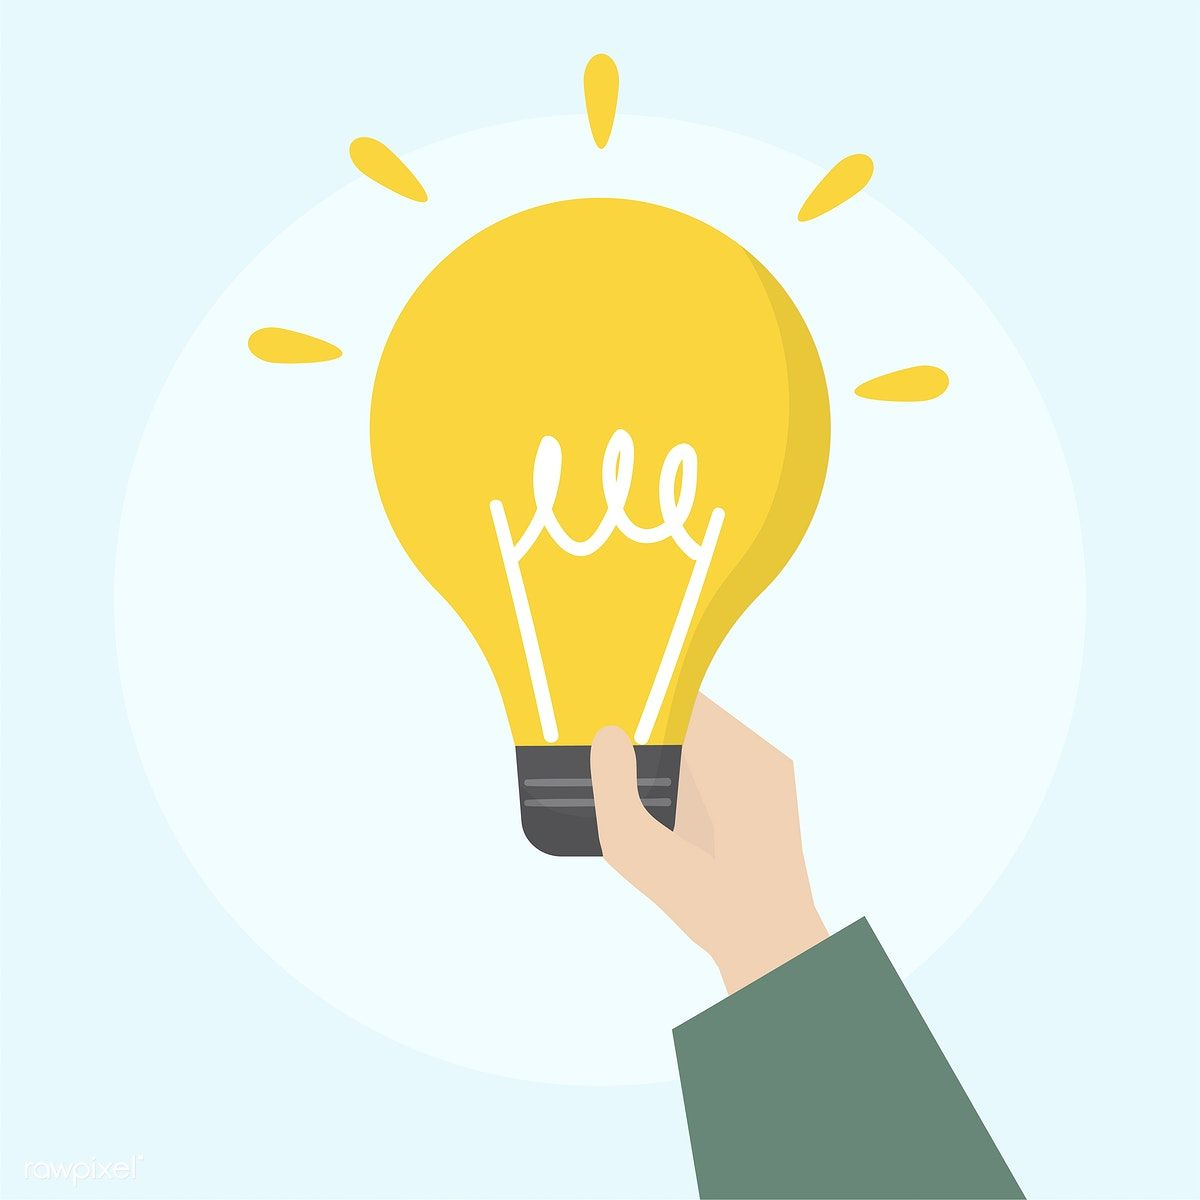 Illustration Of Light Bulb Icon Free Image By Rawpixel Com Light Bulb Icon Illustration Graphic Design Background Templates